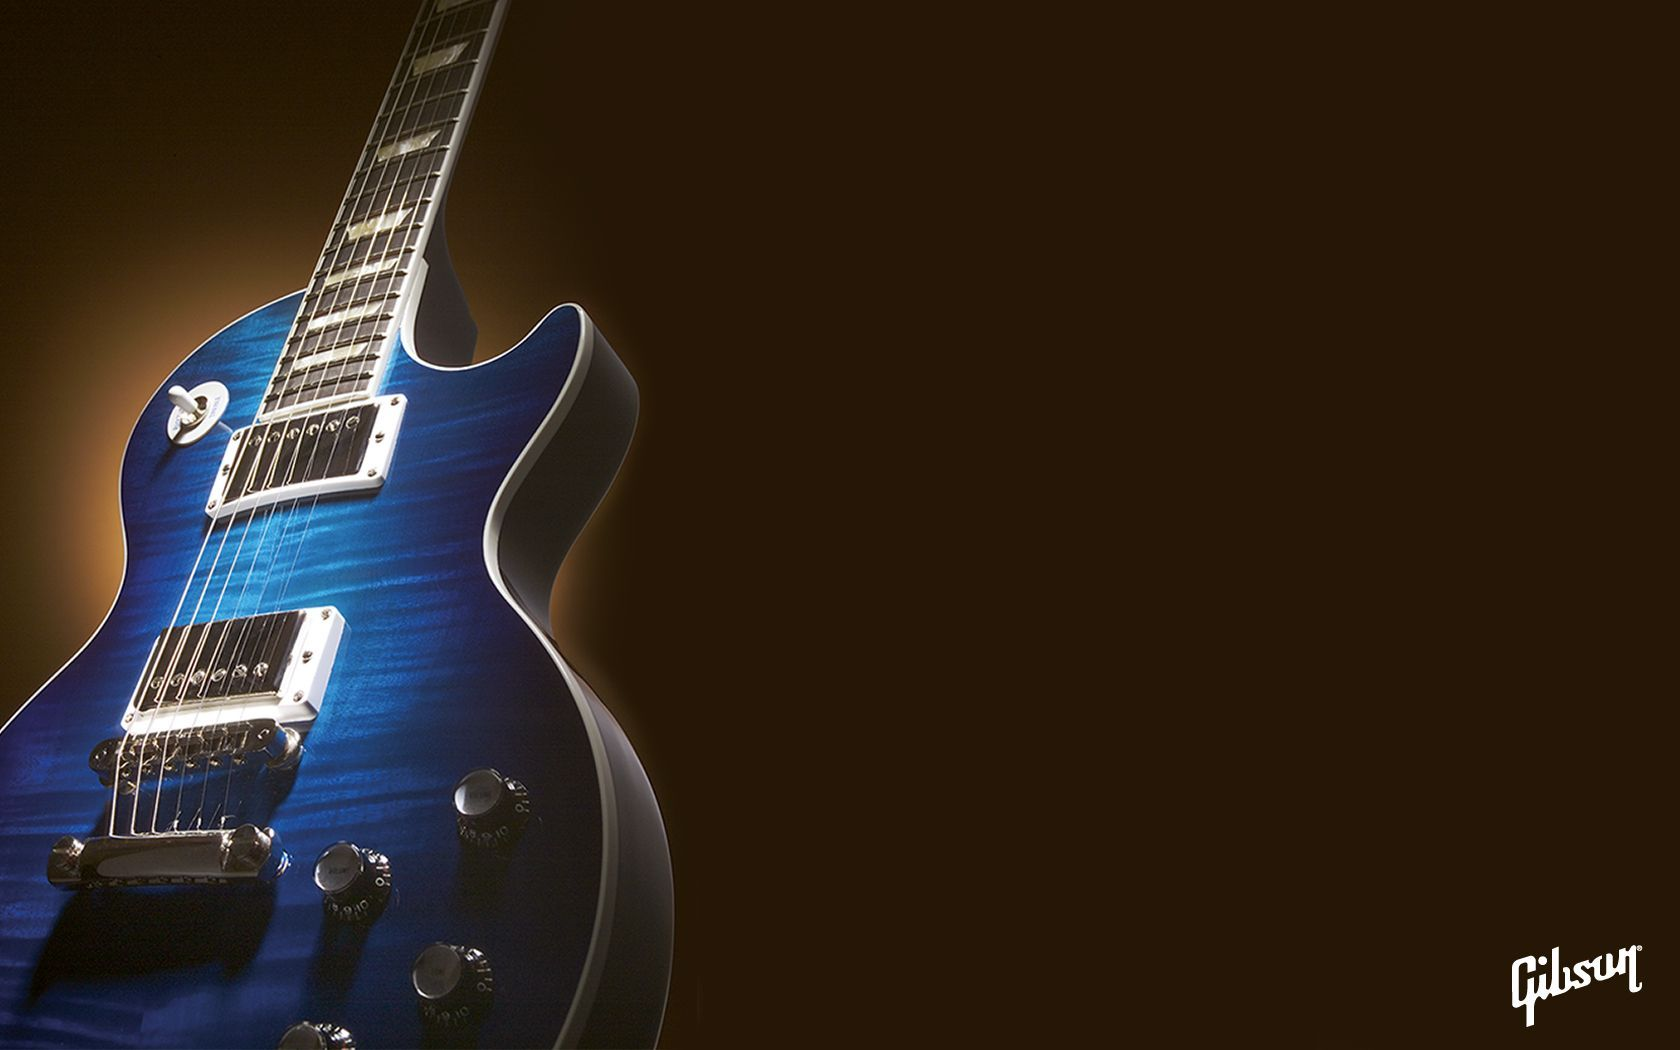 Gibson Guitar Wallpaper